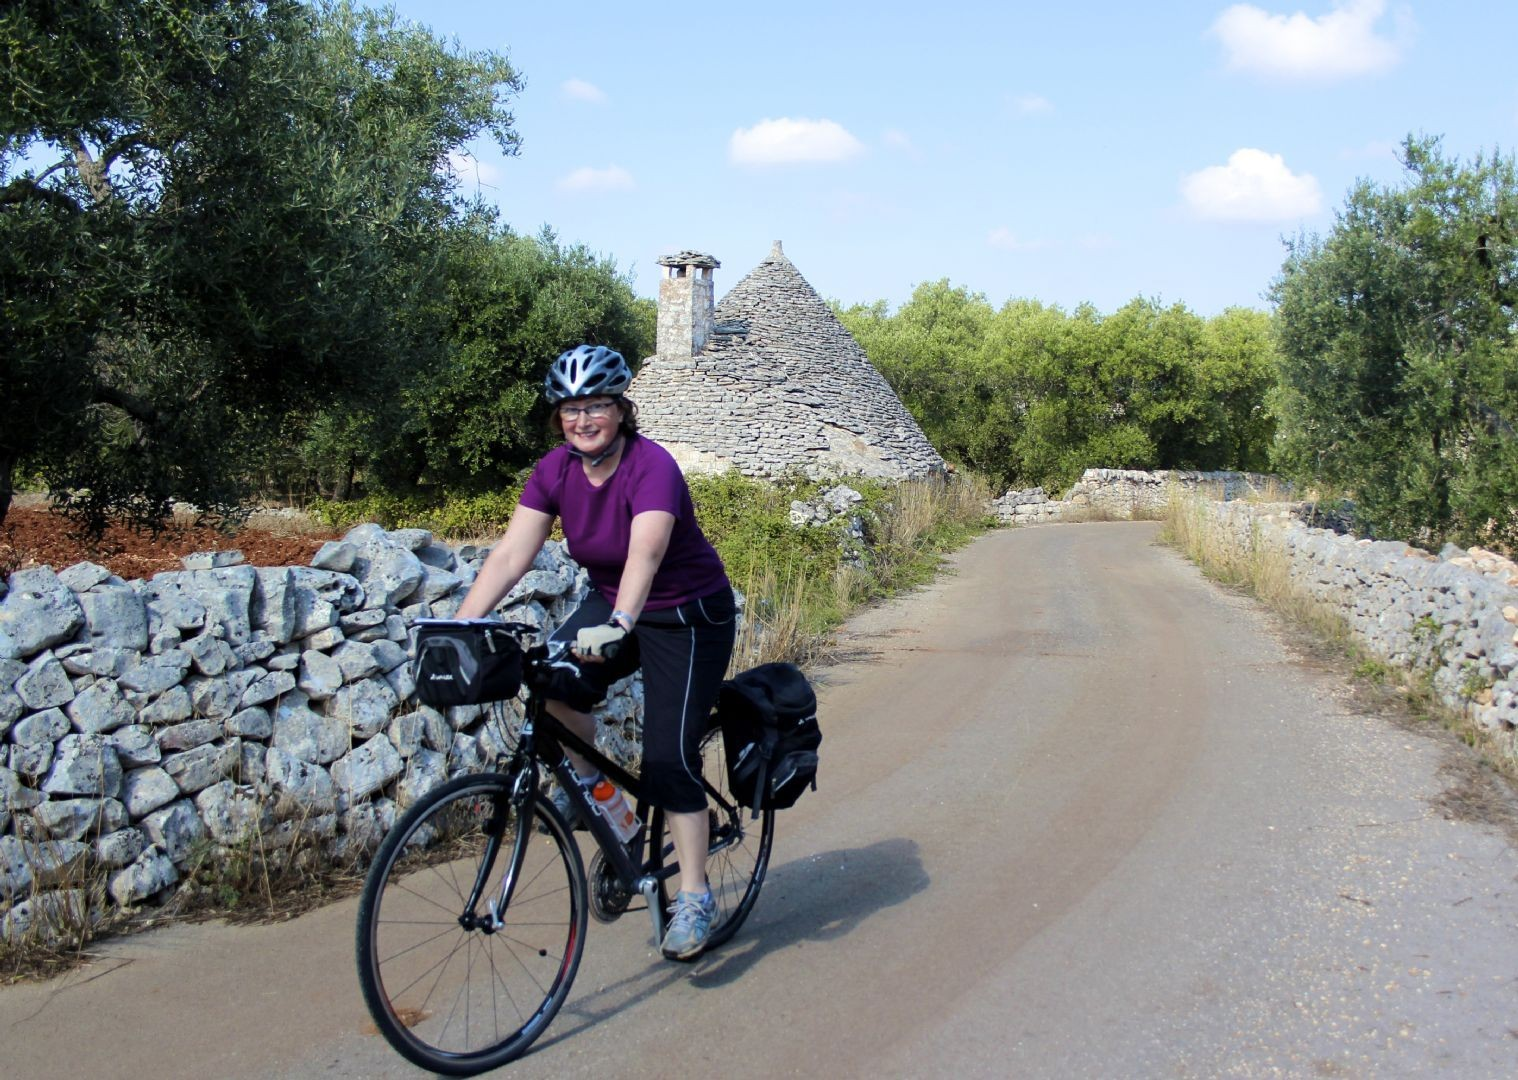 cycling-holiday-puglia-italy-landscape-culture.jpg - Italy - Puglia - Italia Leisure and Family Cycling